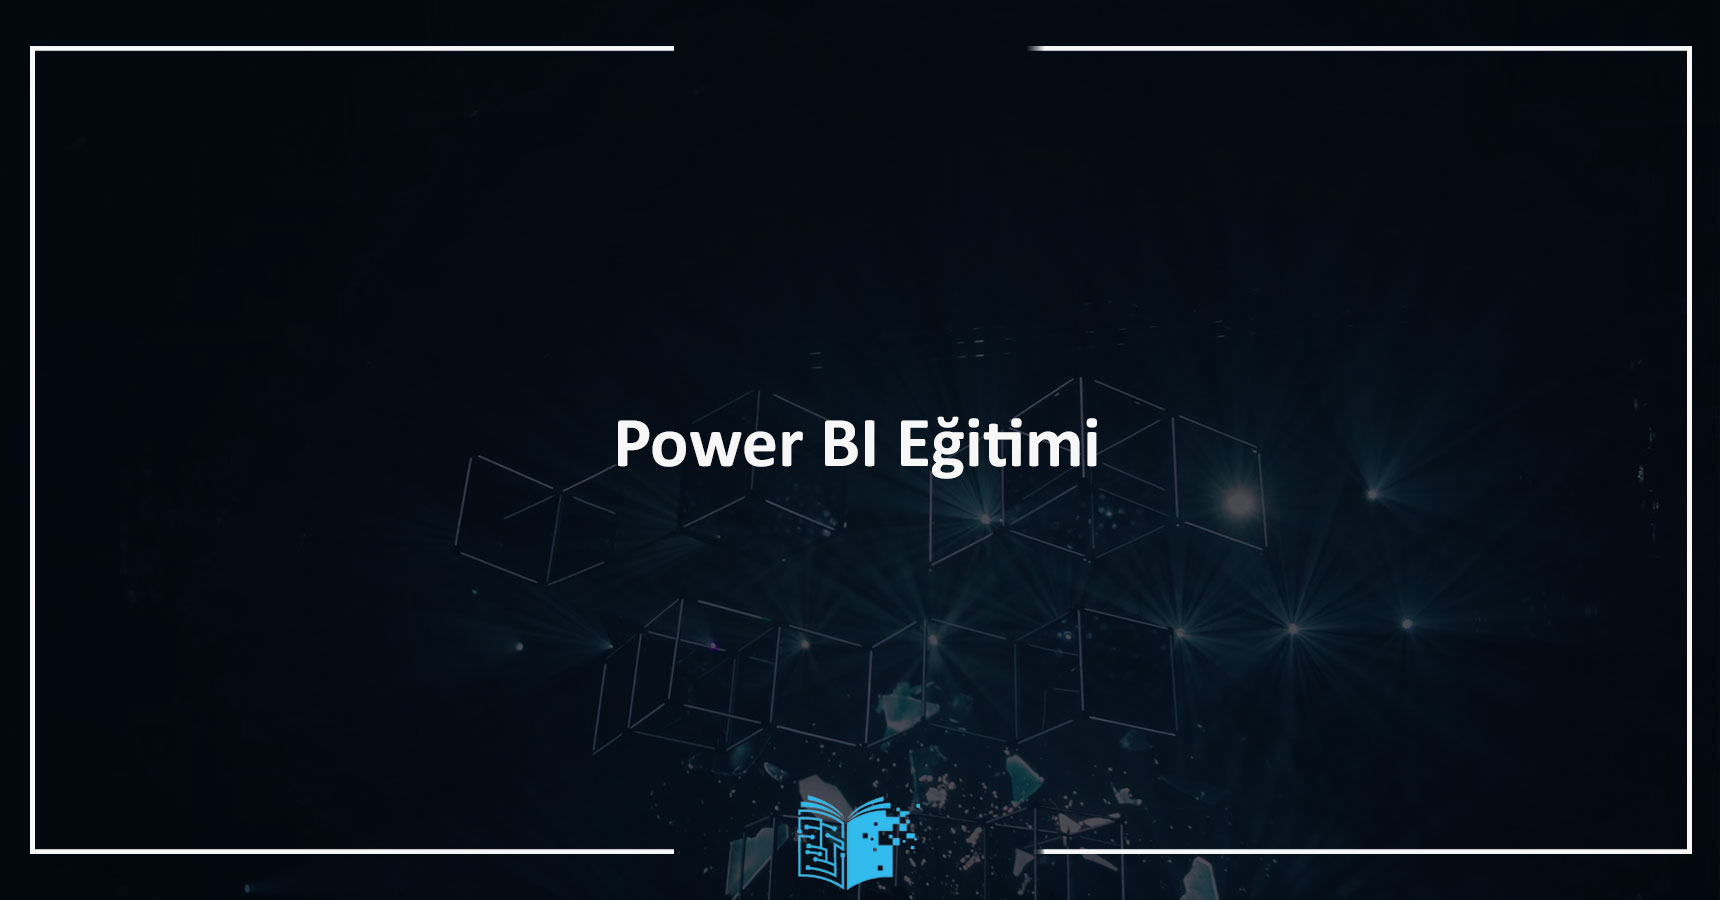 Power BI Eğitimi